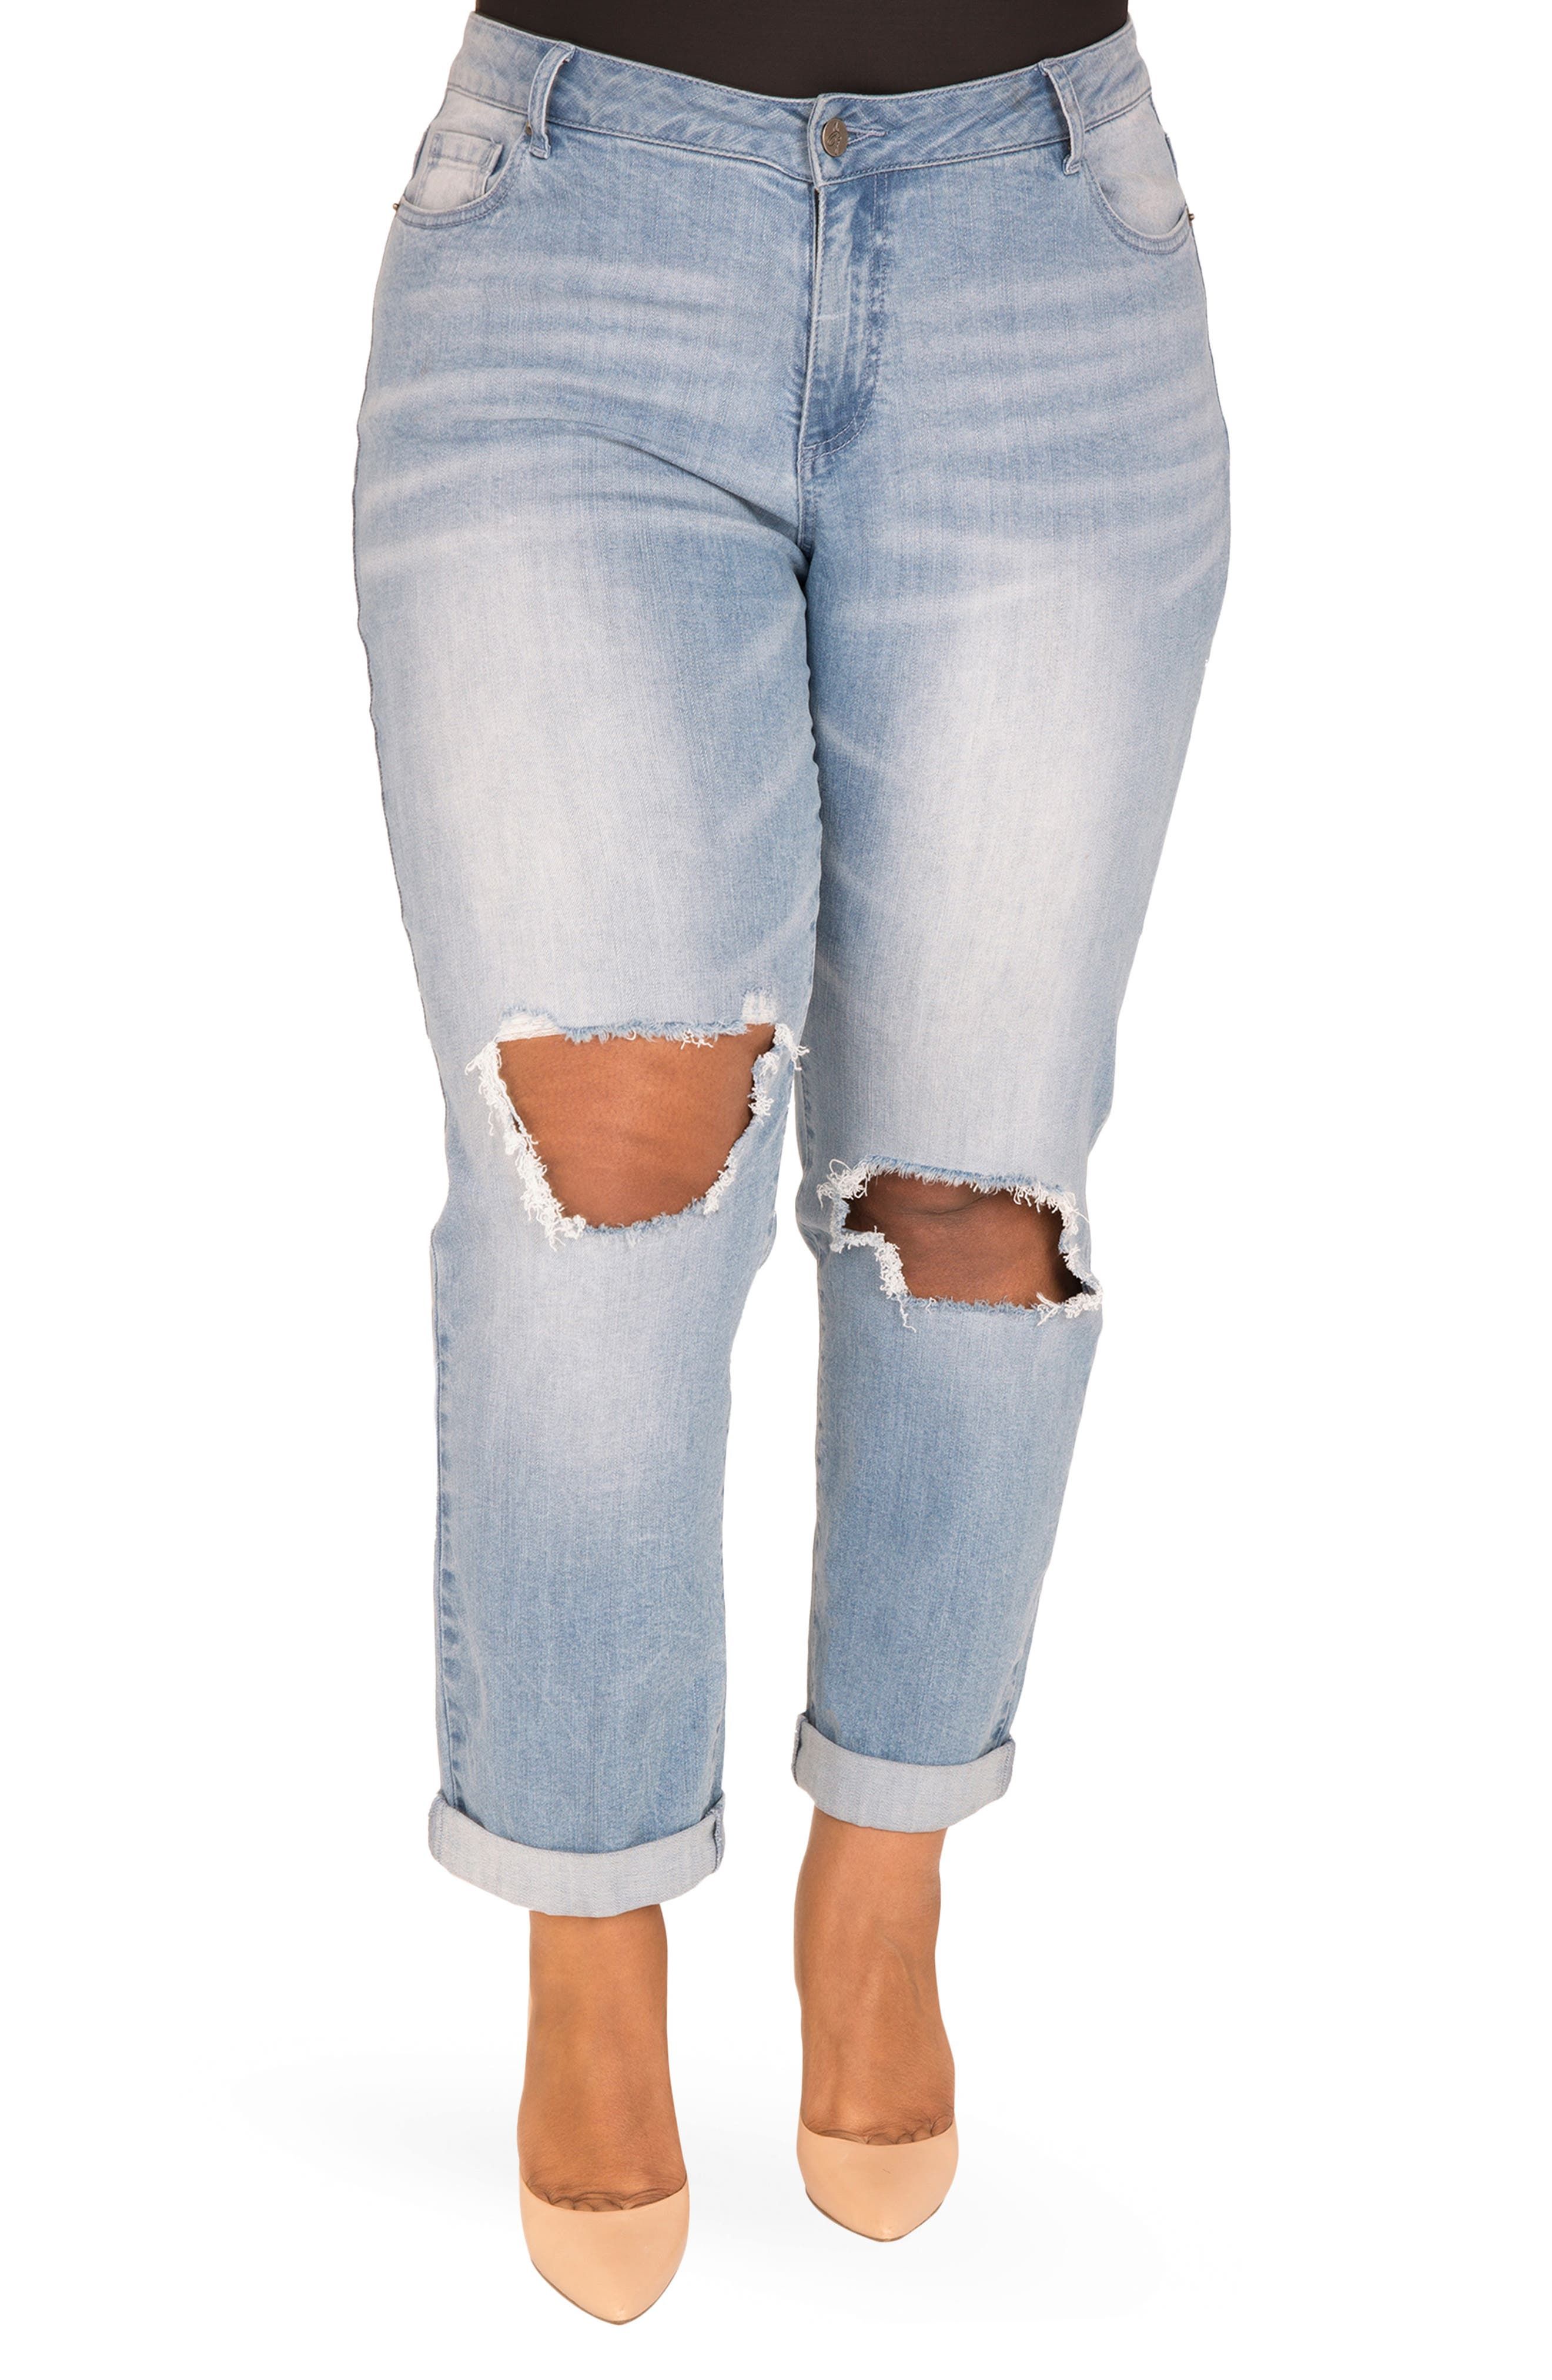 Verla Destroyed Boyfriend Jeans,                             Main thumbnail 1, color,                             LIGHT BLUE